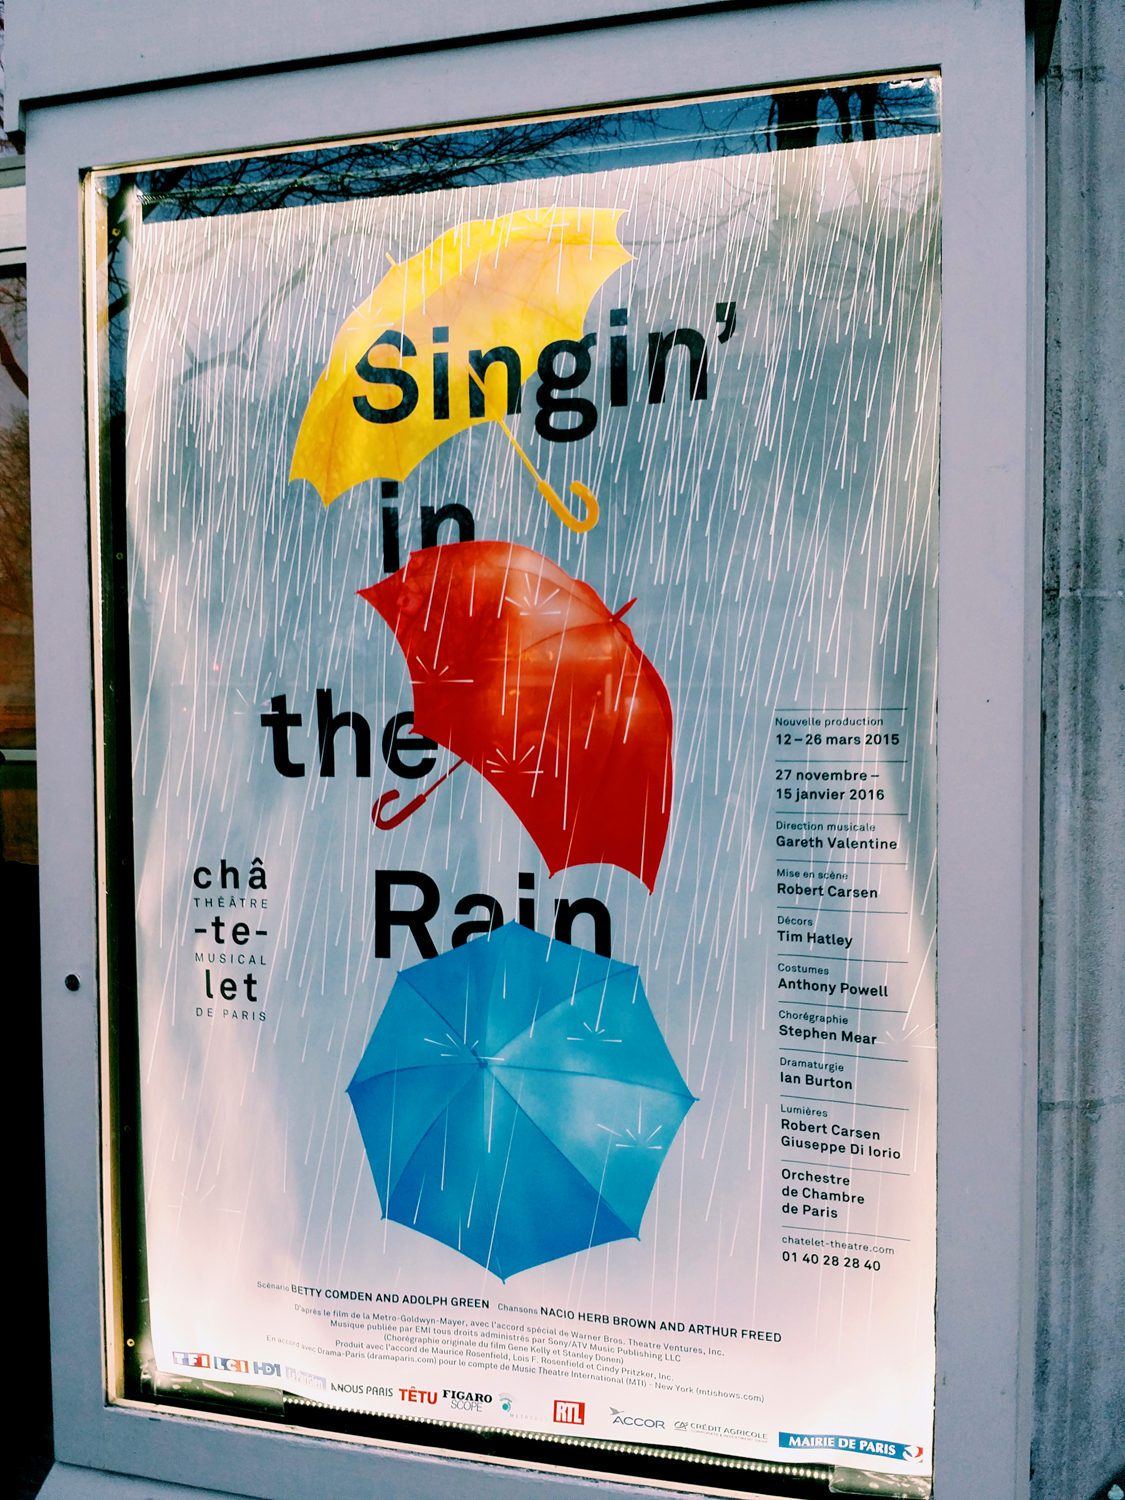 Affiche-Singin-in-the-rain-nouvelle-production-Théâtre-du-Chatelet-paris-musical-show-poster-Robert-Carsen-photo-by-United-States-of-Paris-blog